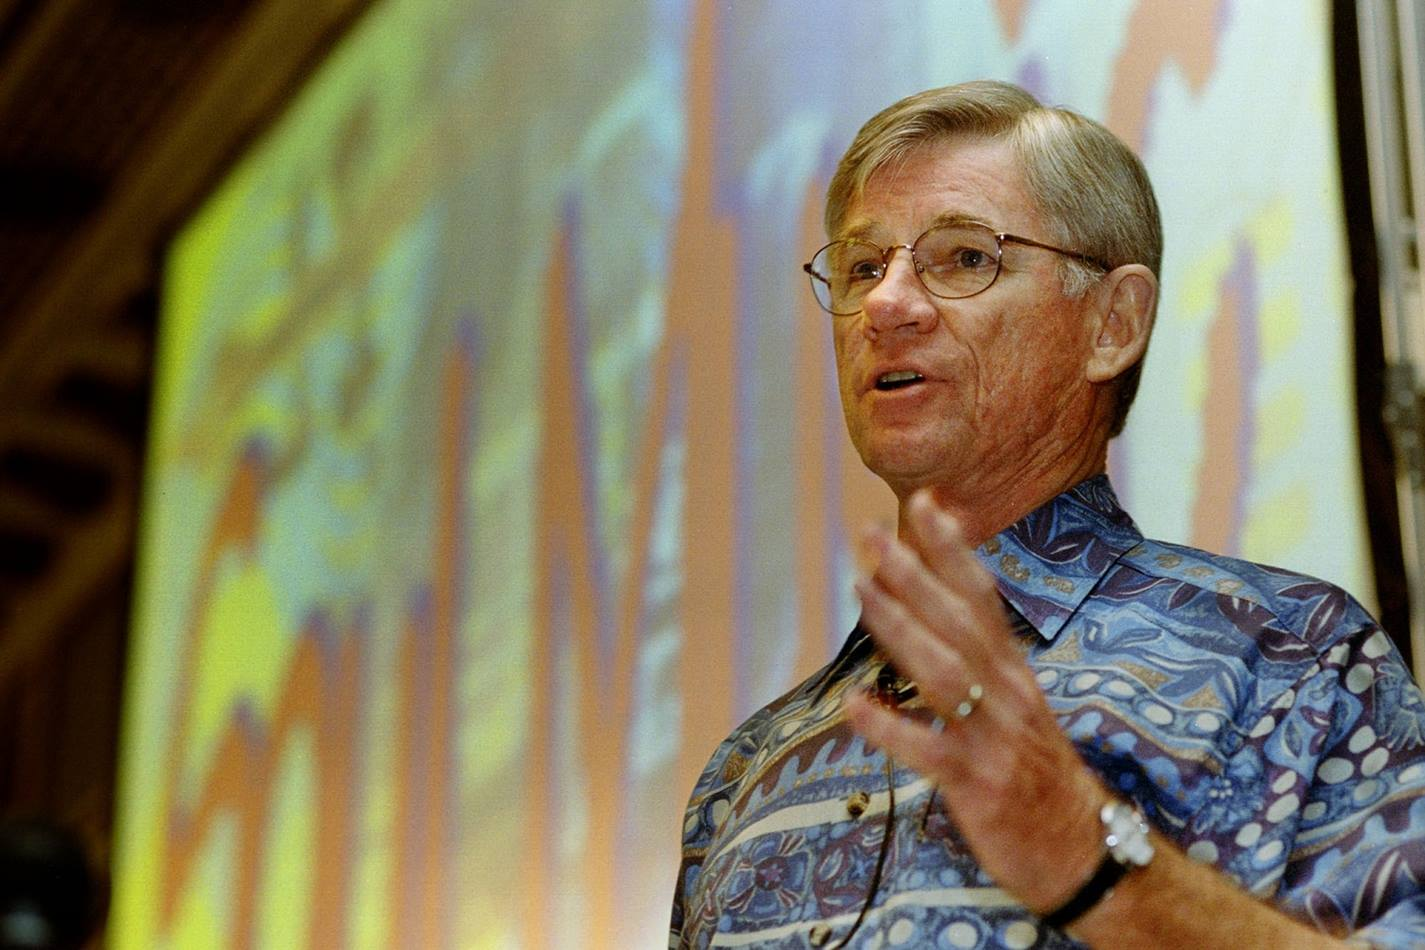 Rev. Tex Sample in 2006 Photo by Mike DuBose, United Methodist Communications